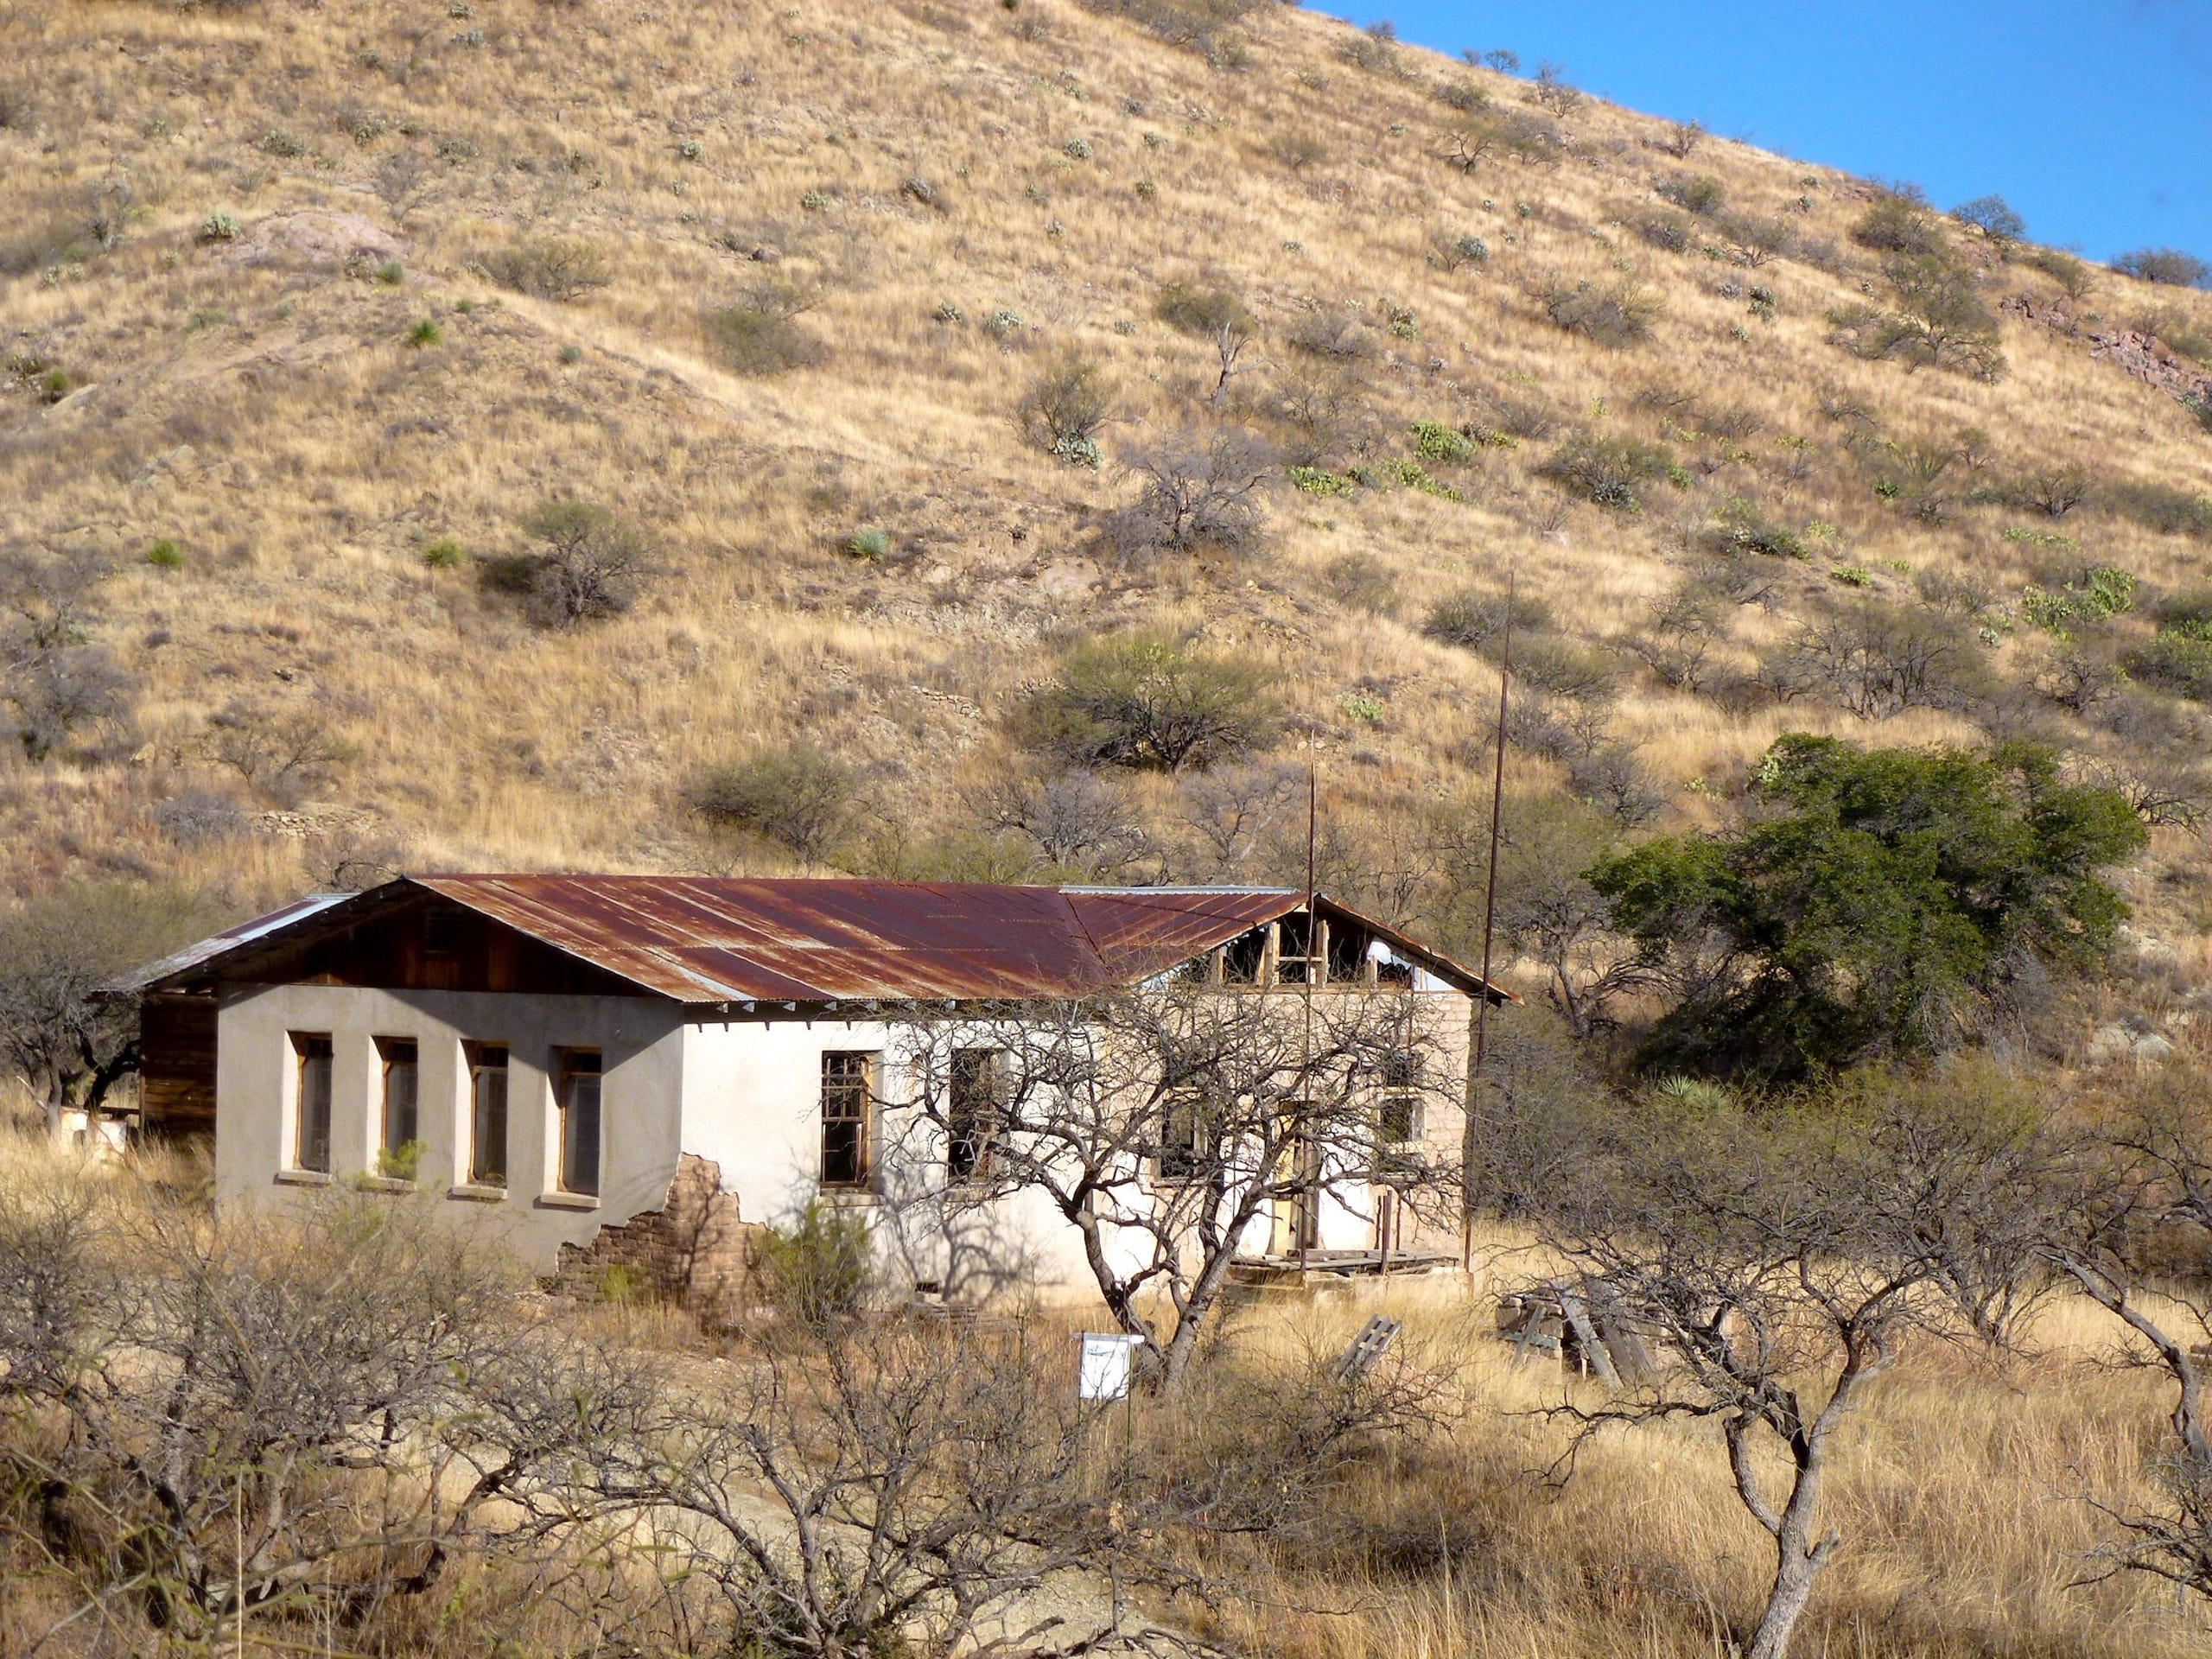 The ghost town of Ruby, Arizona, is open for tours, fishing and camping.